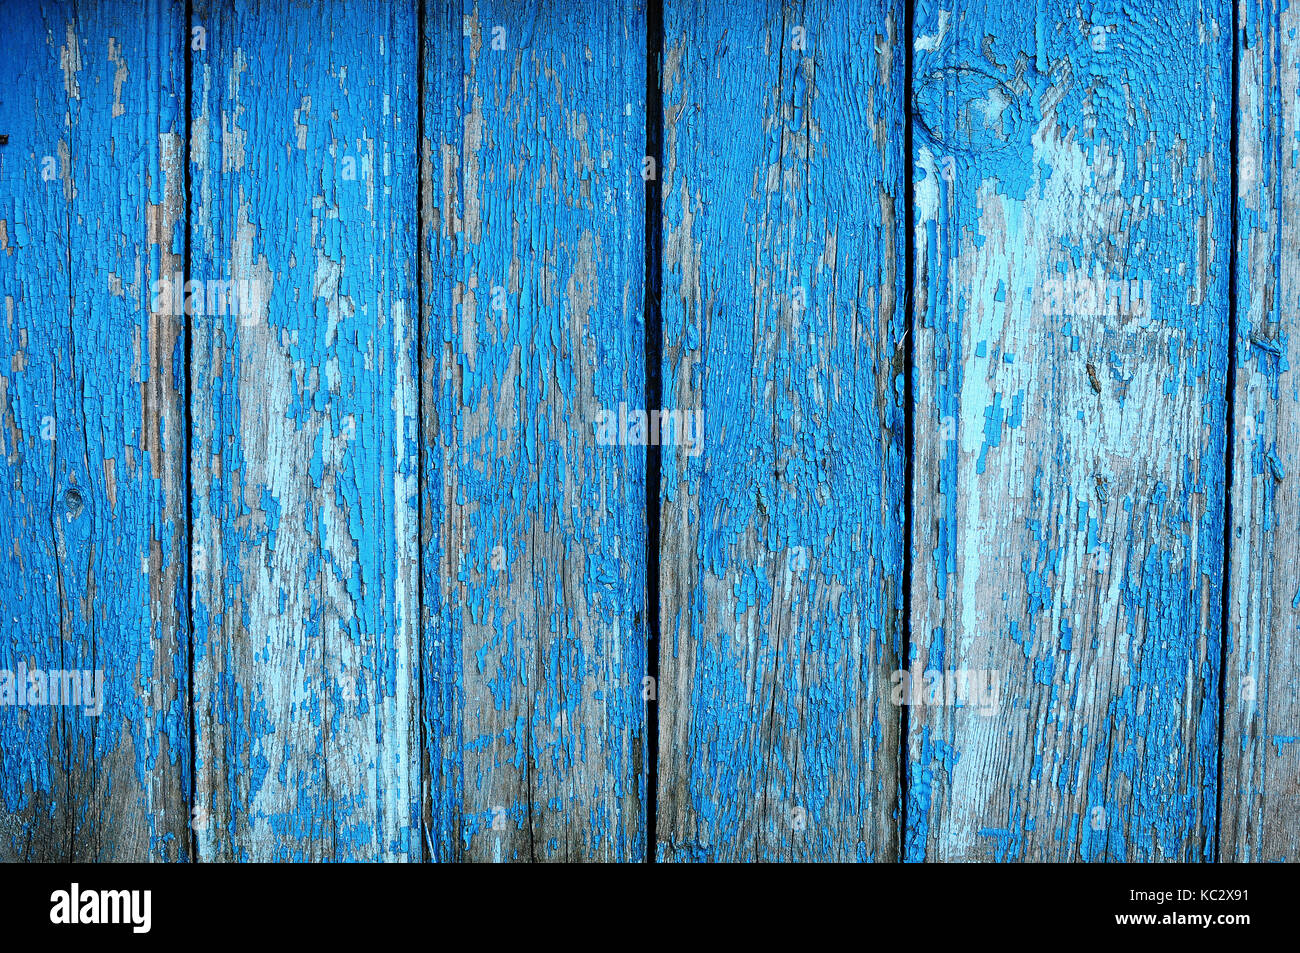 Texture of shabby wooden planks with peeling blue paint rustic